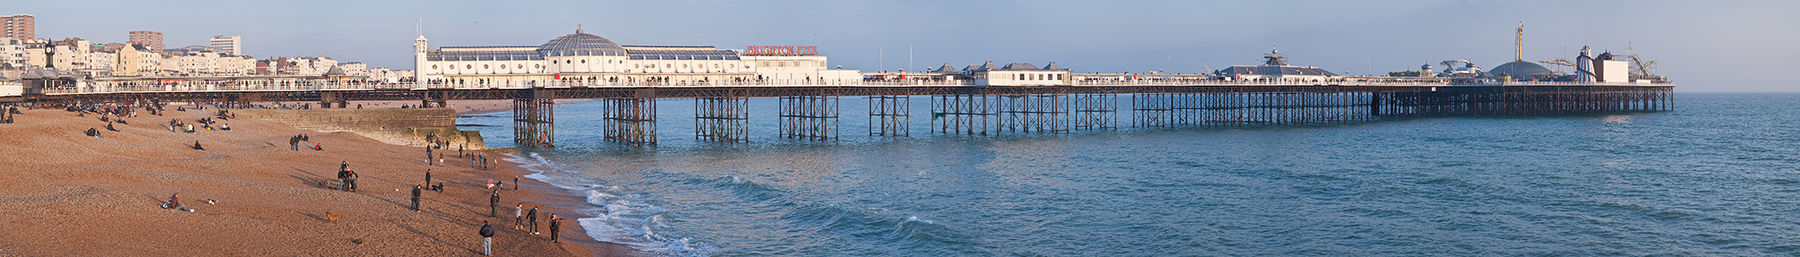 Brighton Pier stretches half a kilometre into the sea.